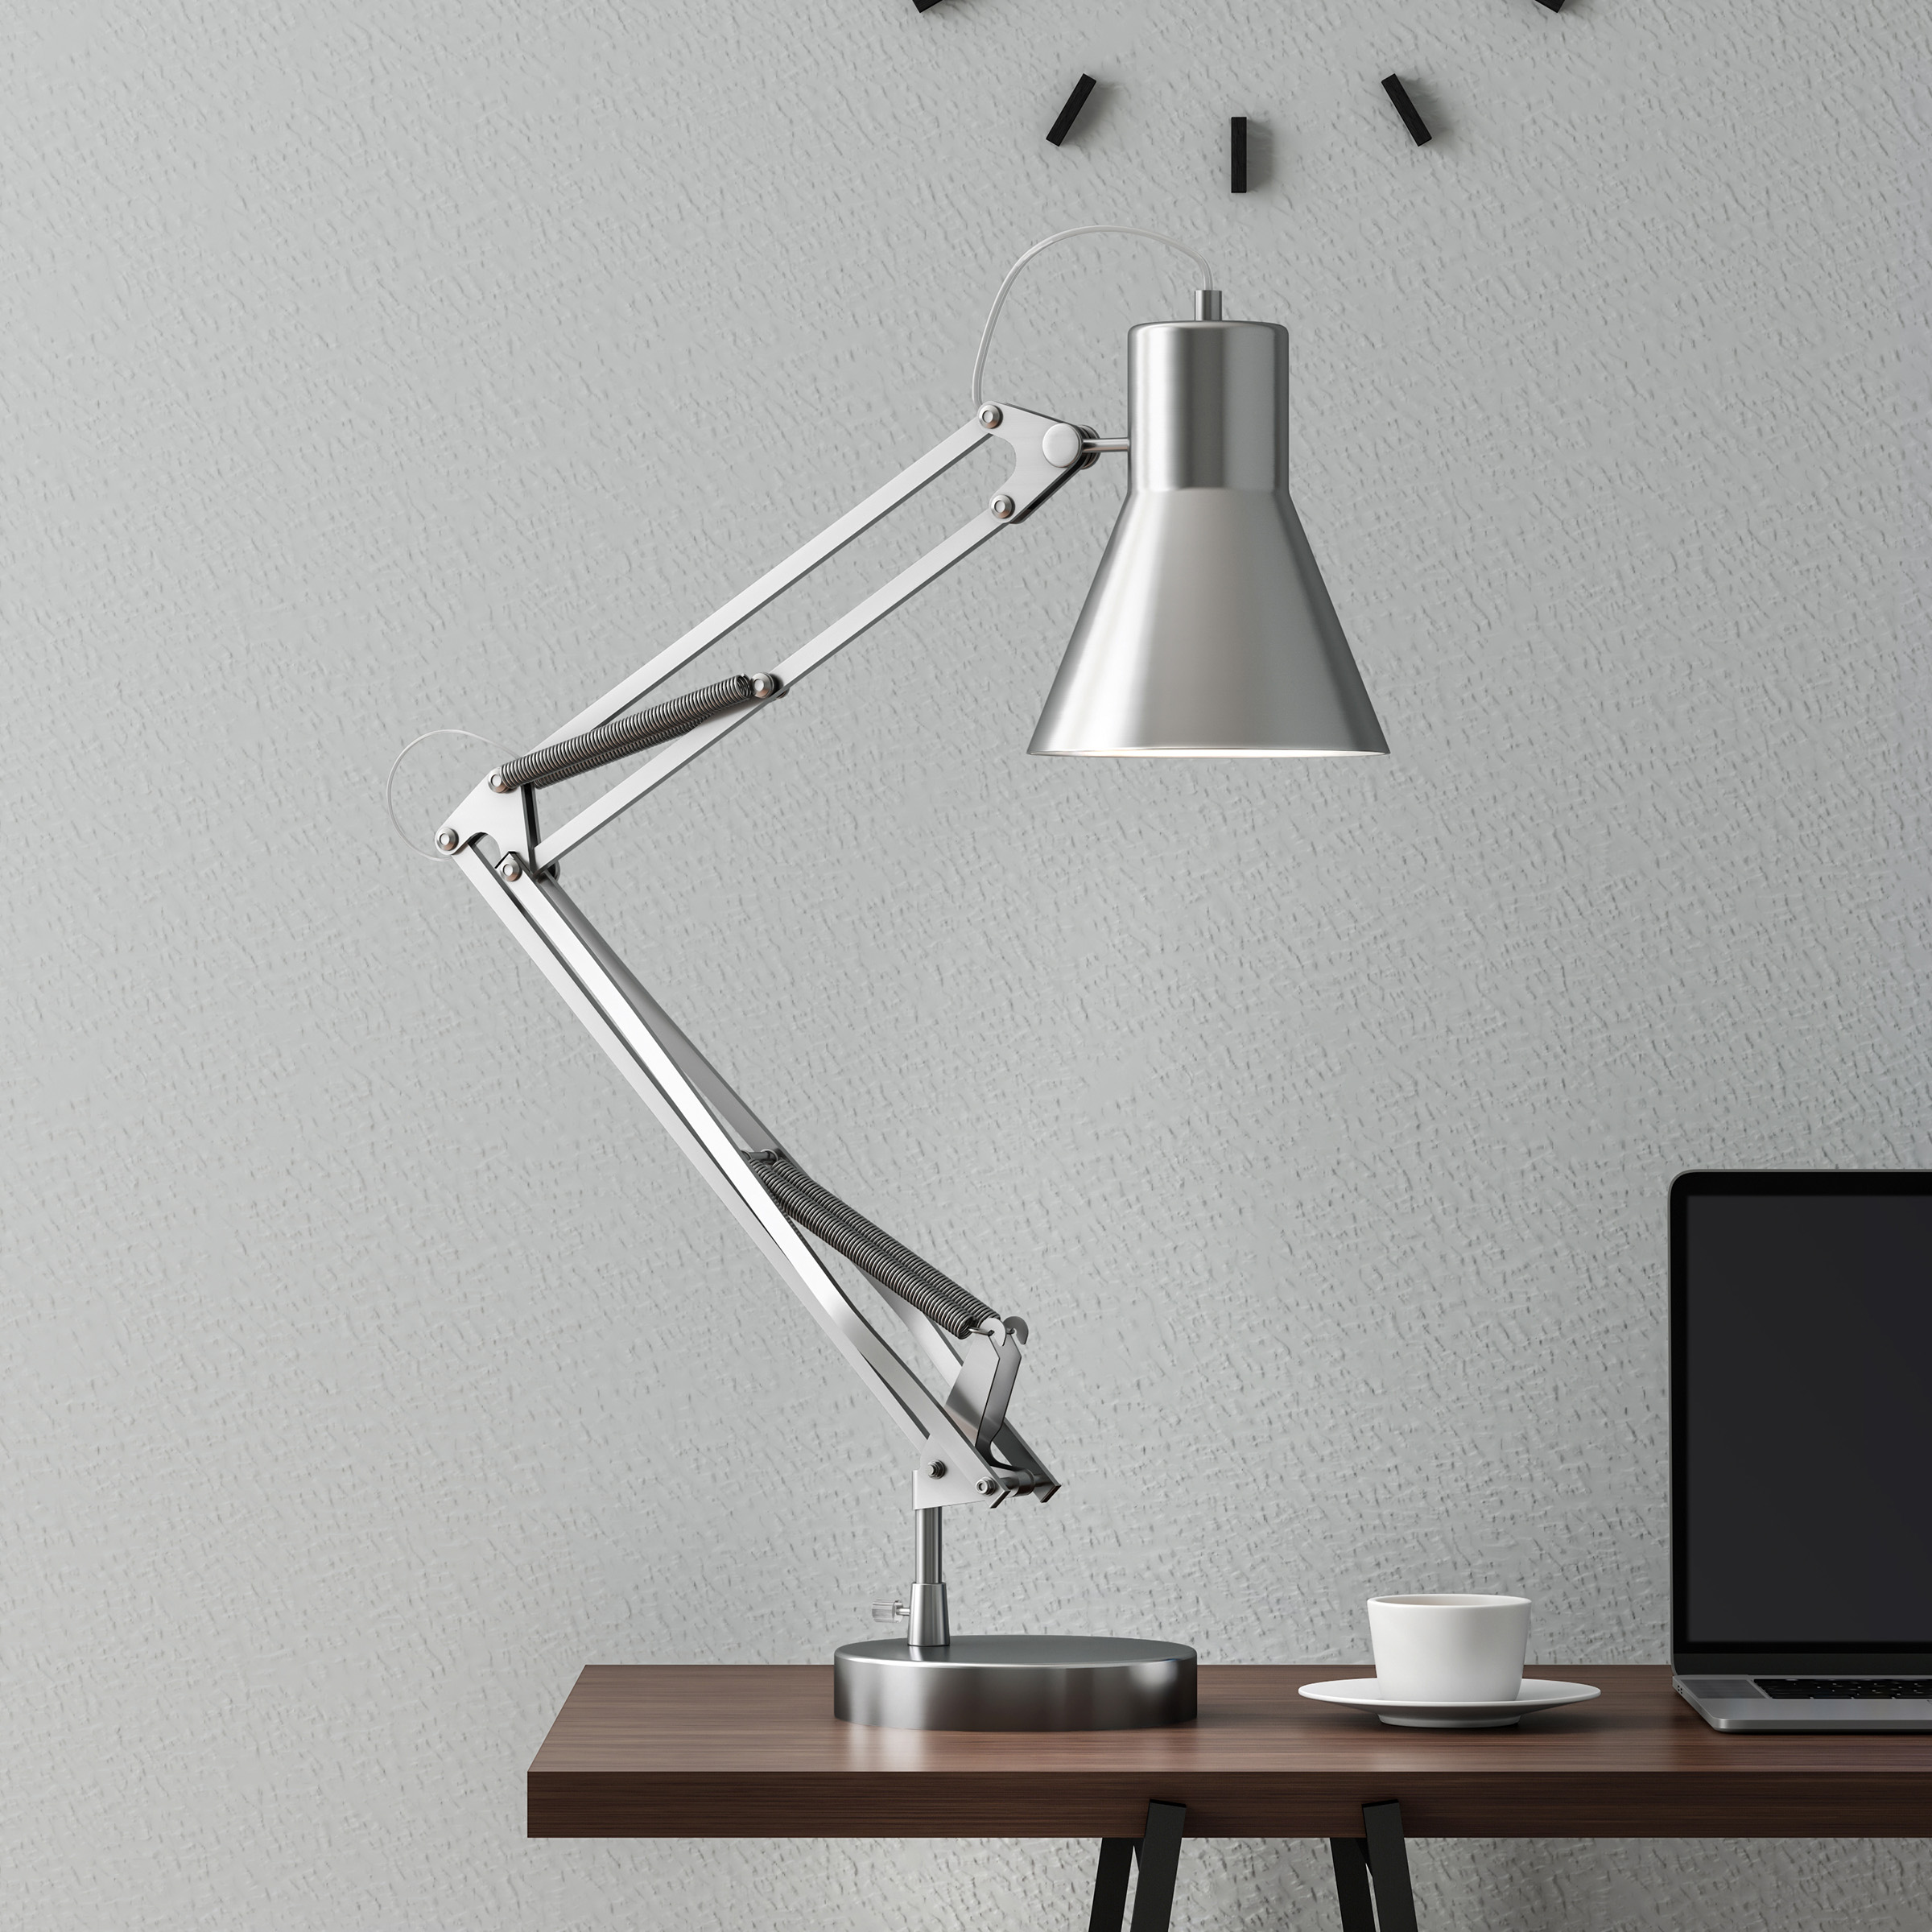 Architect Desk Lamp  LED Task Light With Adjustable Swing Arm For Home And  Office